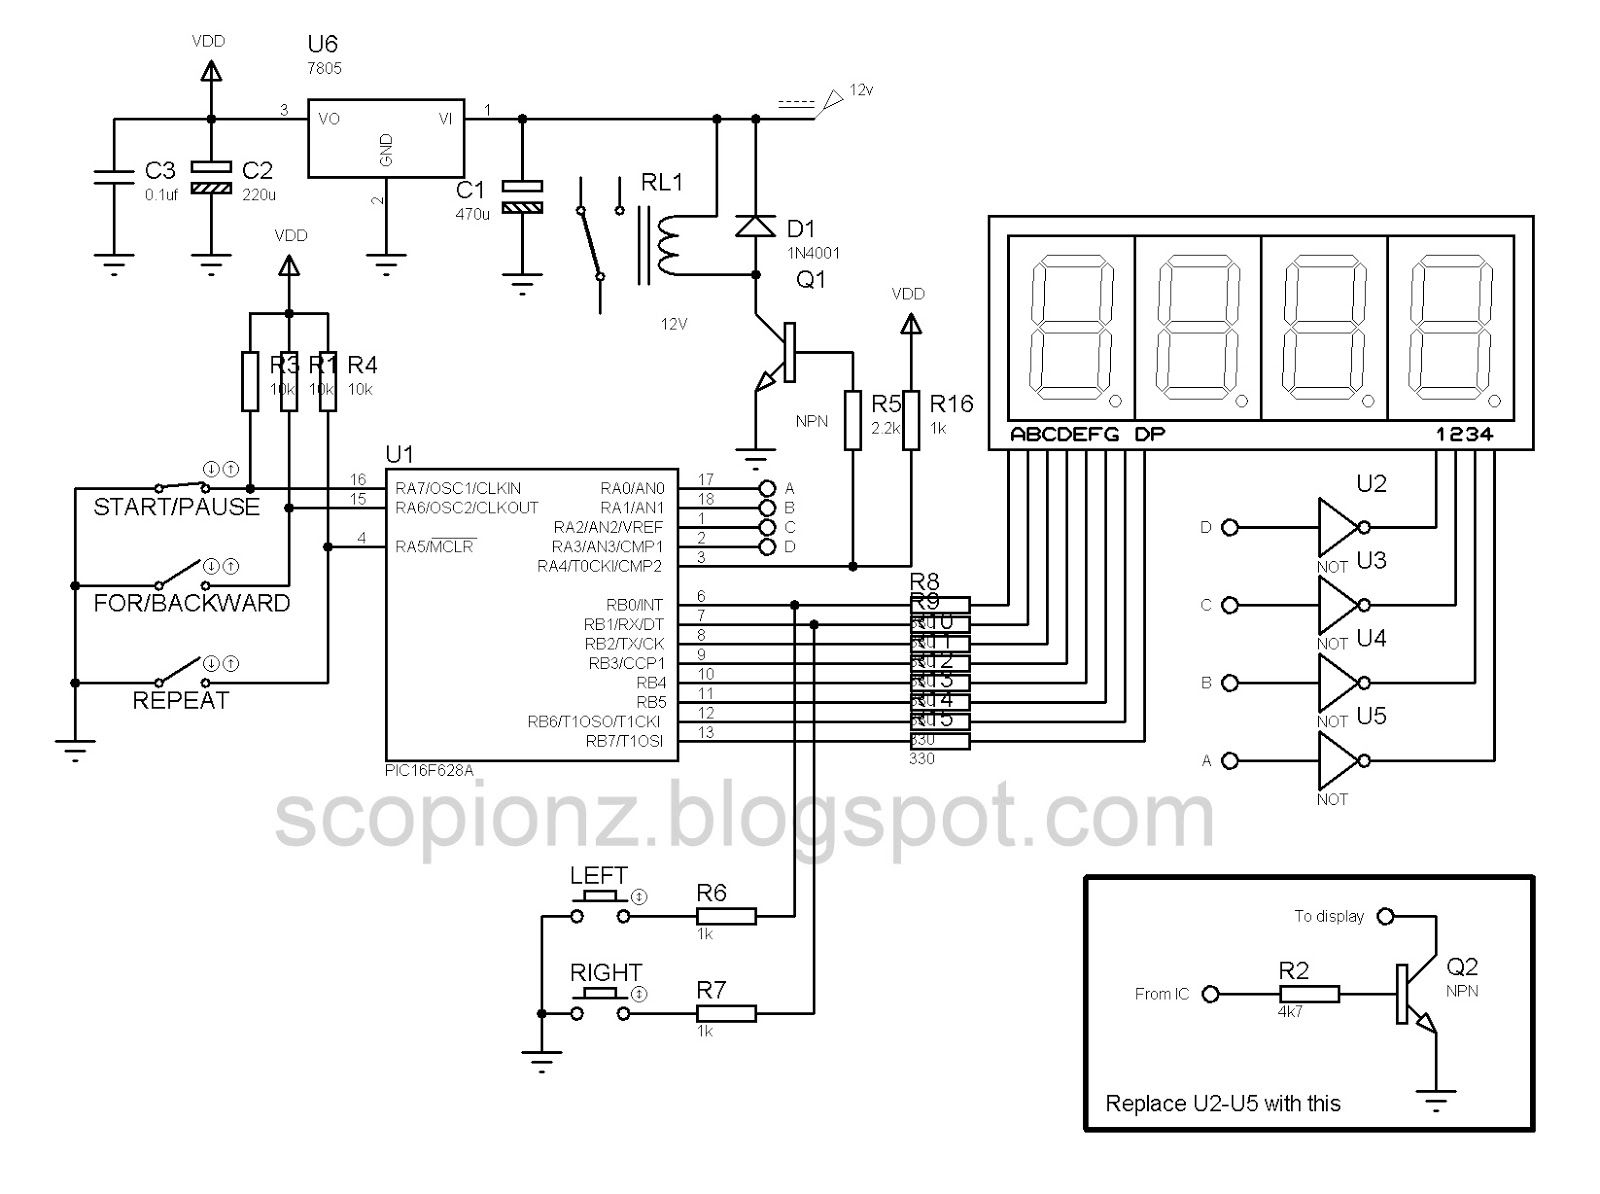 Comfortable Electronic Schematics Pdf Gallery Convex Lens Diagram Omron Drive Wiring Excellent Pictures Best Image 6ee9422138f80a63d7e9f40ca91a9236 Diagrampy